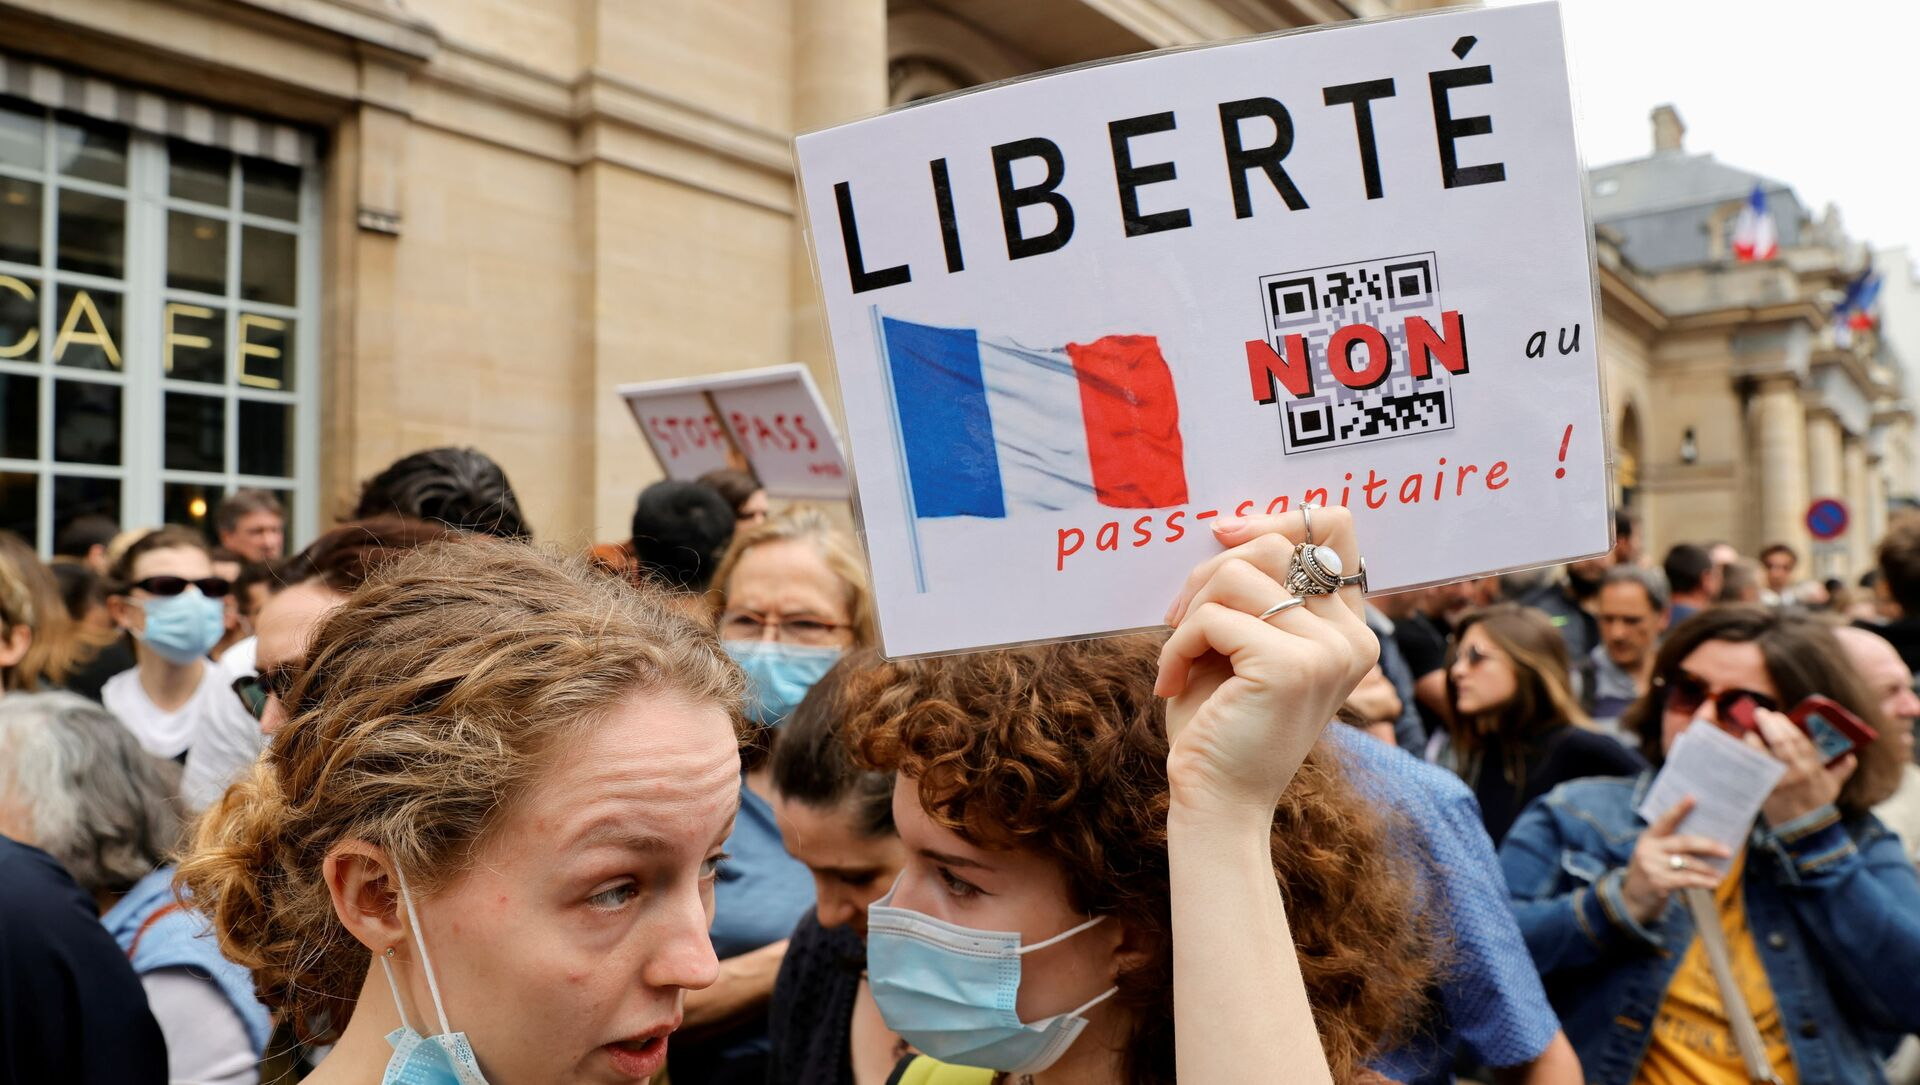 Demonstrators attend a protest against the new measures announced by French President Emmanuel Macron to fight the coronavirus disease (COVID-19) outbreak, in Paris, France, July 17, 2021. - Sputnik International, 1920, 31.07.2021